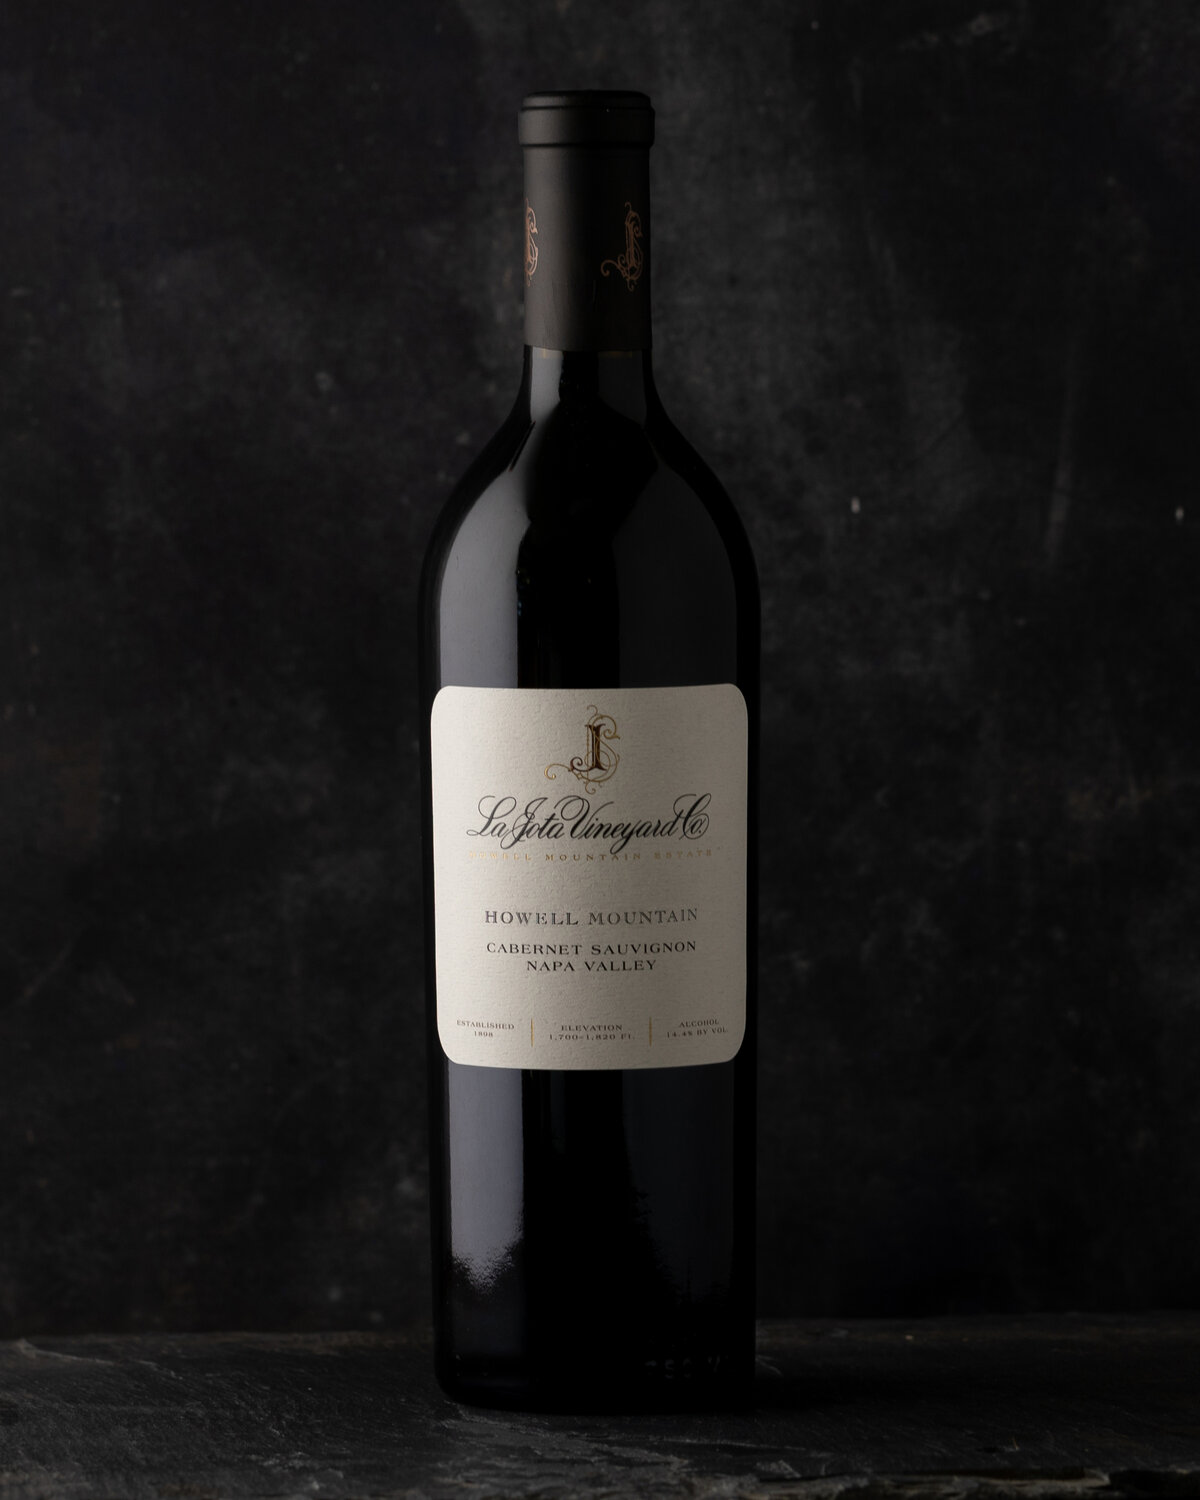 2016 La Jota Howell Mountain Cabernet Sauvignon